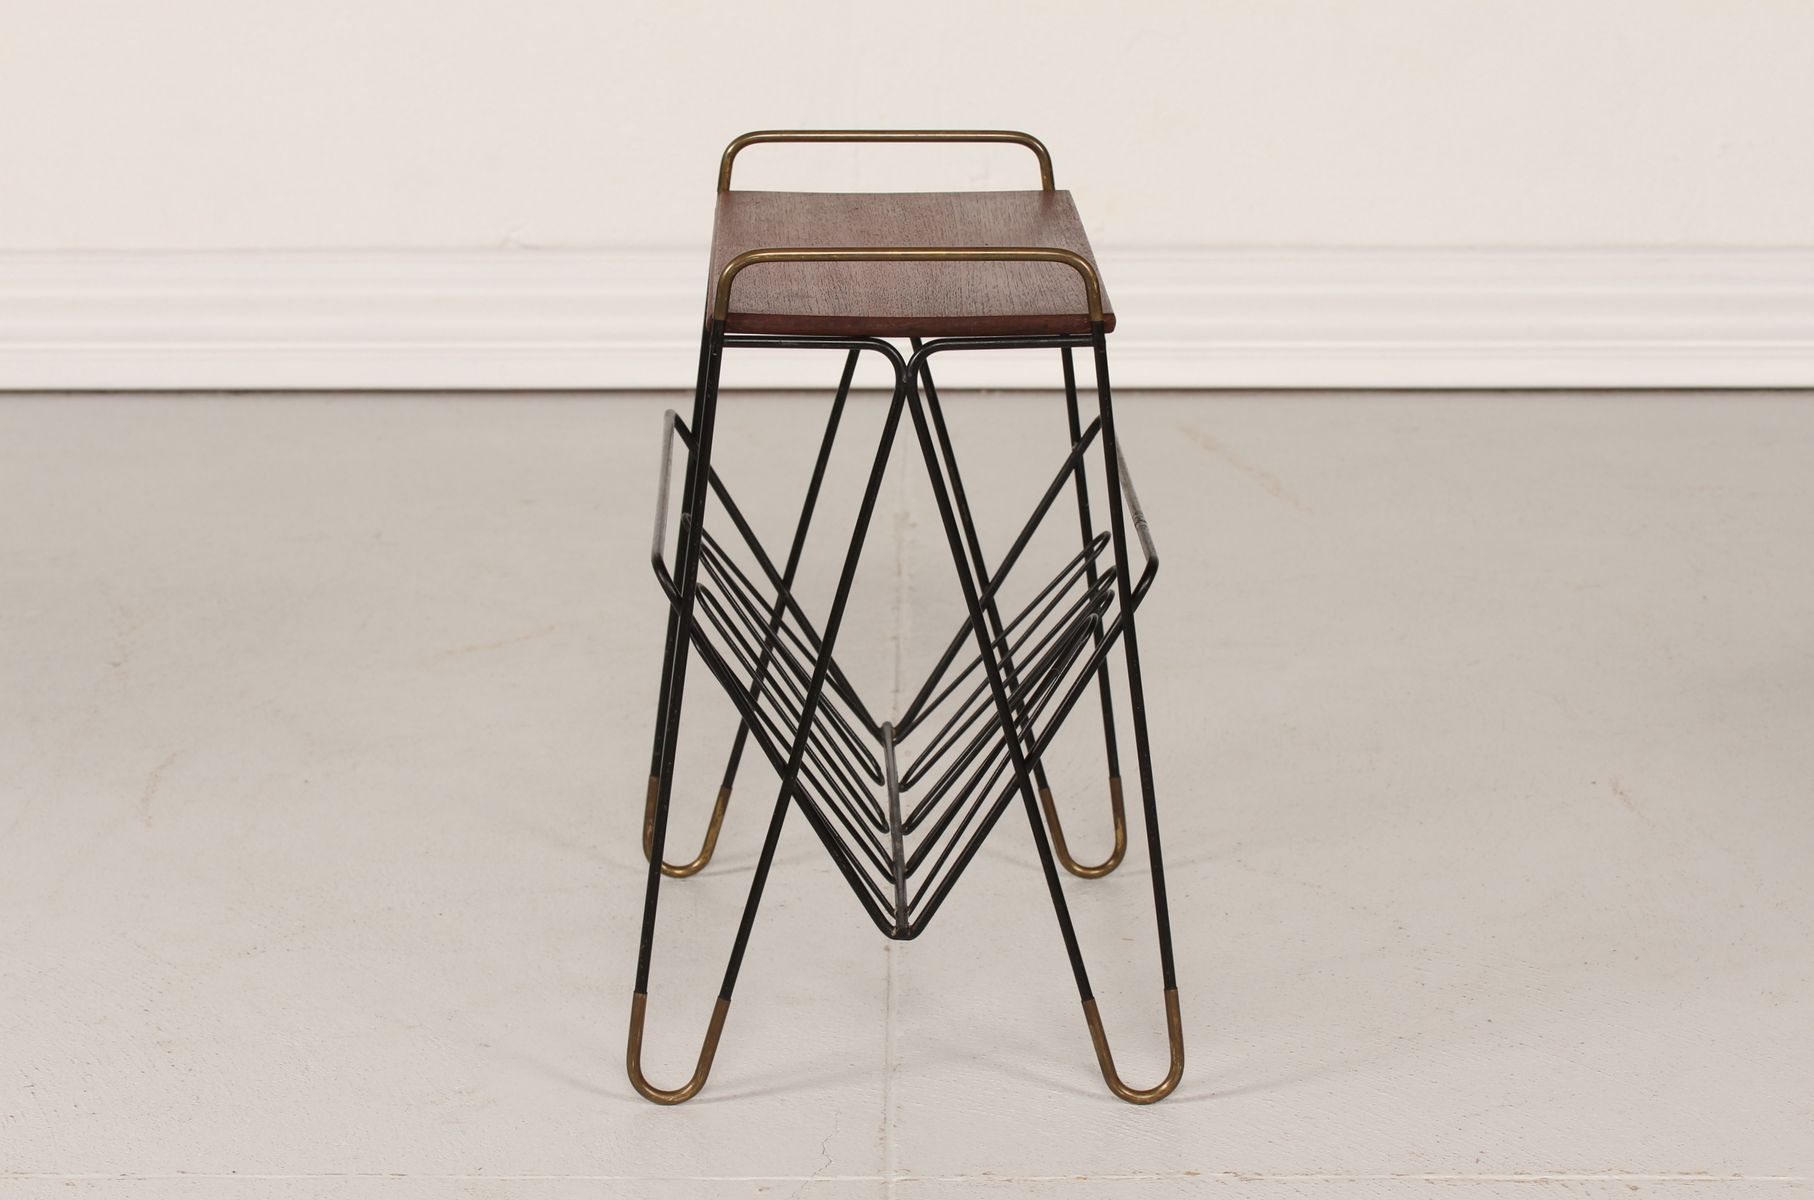 Danish Metal Magazine Rack with Teak Top 1950s for sale at Pamono